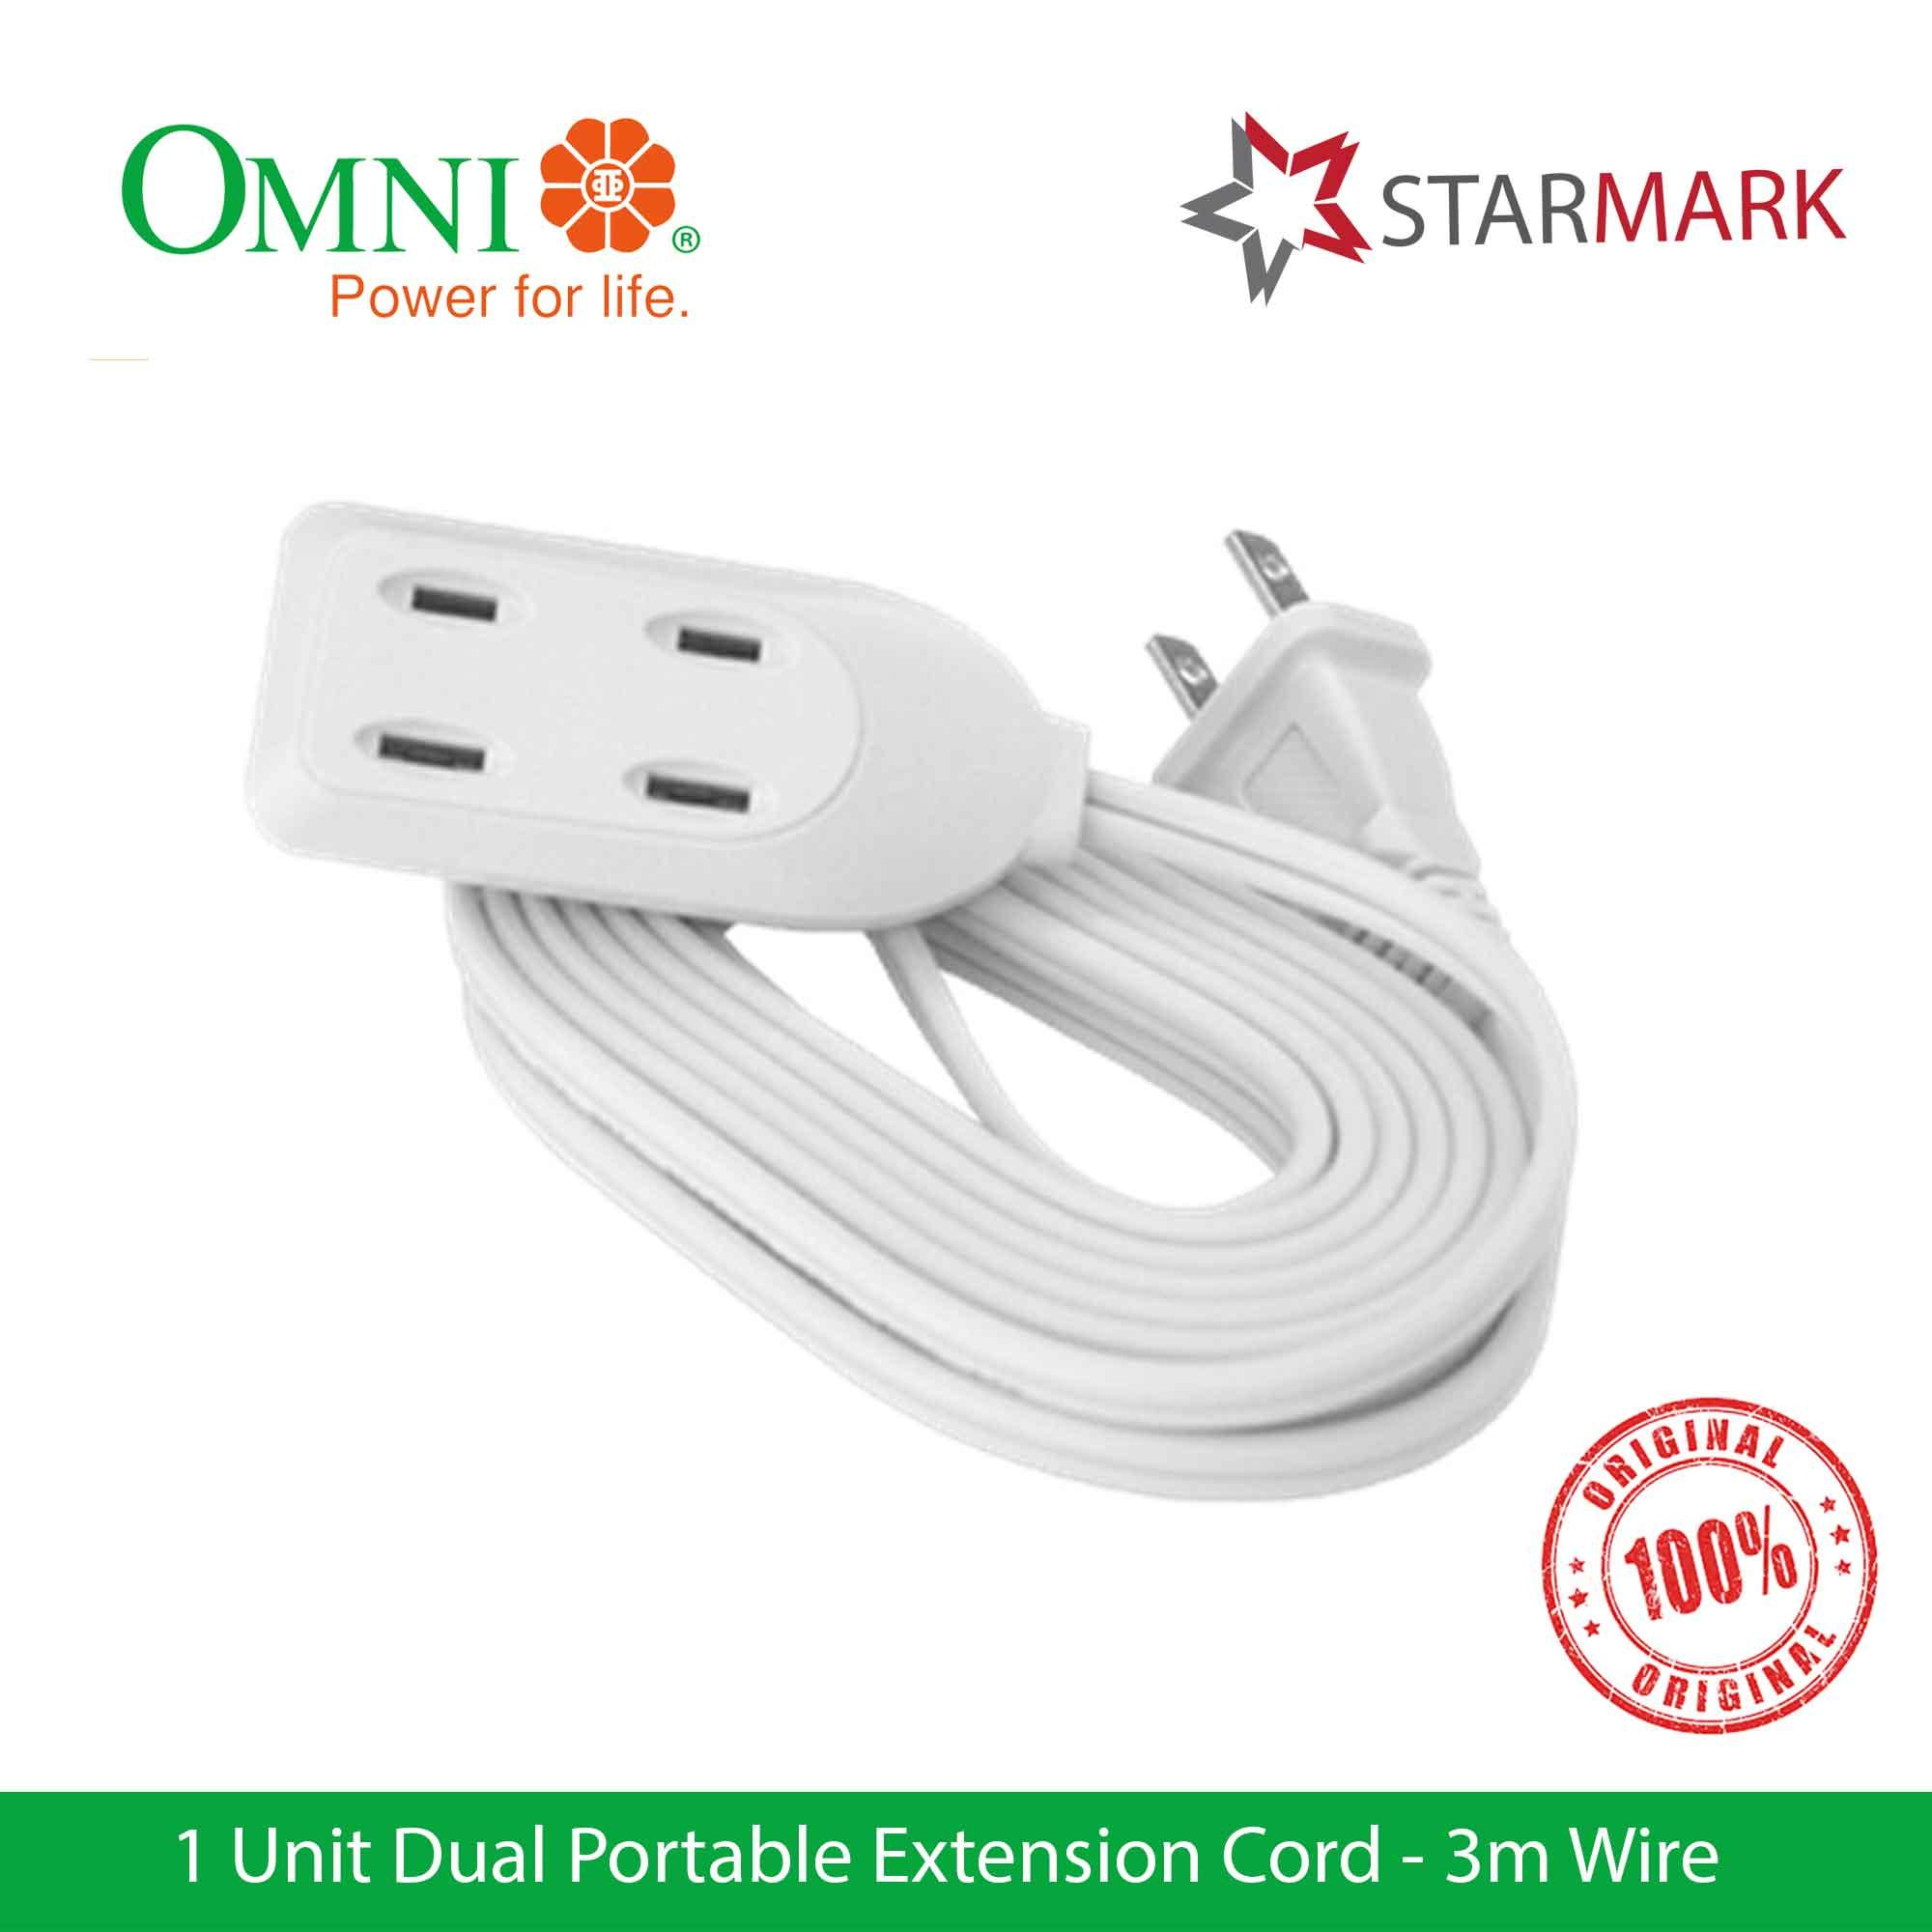 Omni Extension Cord Dual Portable 3 Meter Wire Wdp303 Wdp-303 - Genuine And Original By Starmark Enterprises.